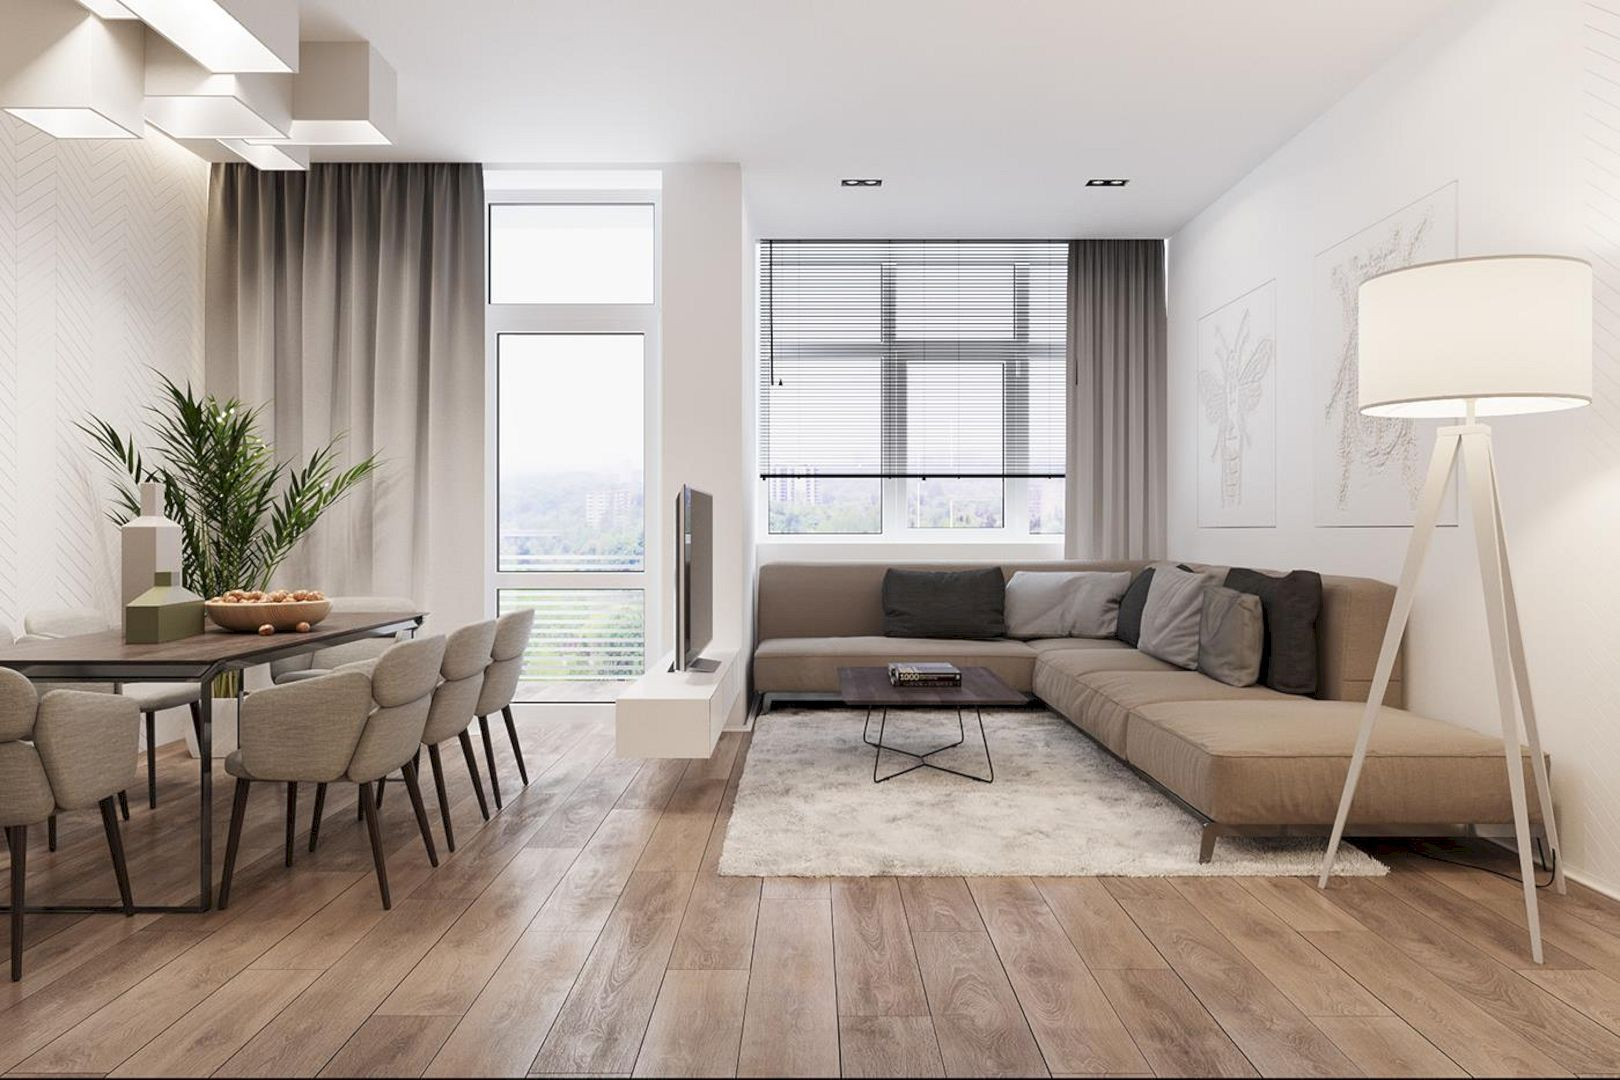 Intelligence A Modern Apartment With An Open Space Concept Design